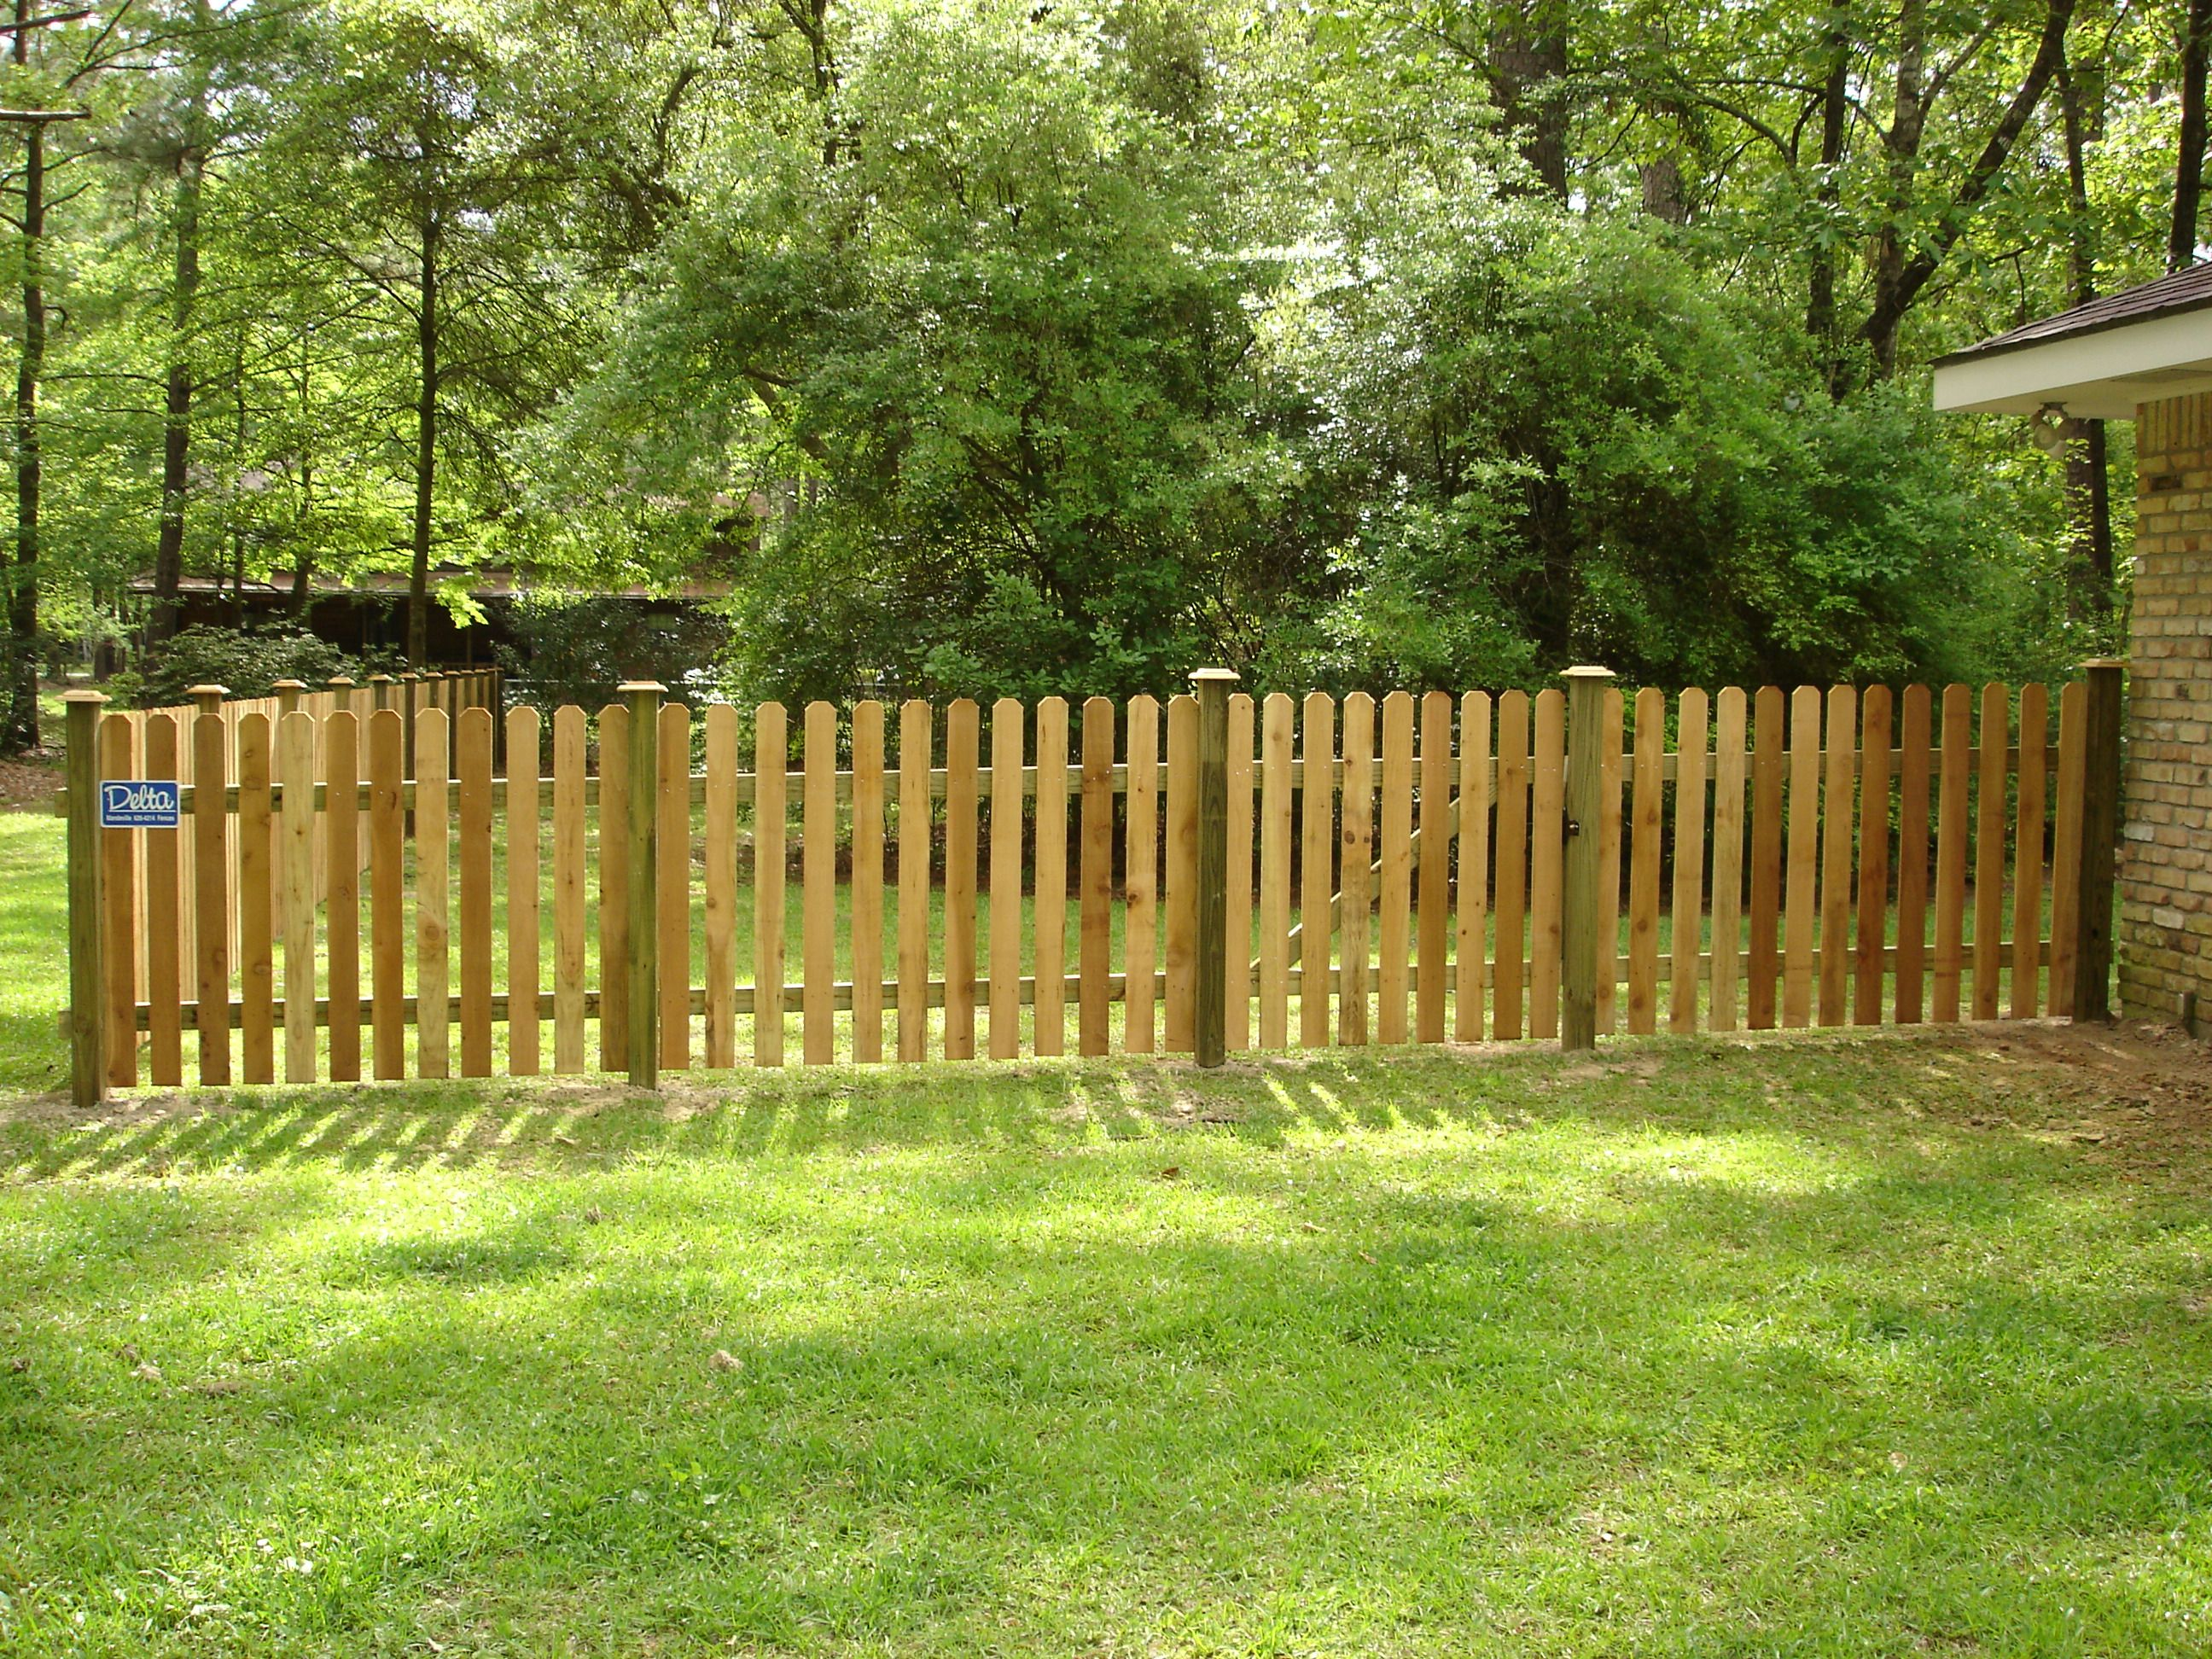 Dog Ear Pickets With Visible Posts With Post Caps Fence Design Picket Fence Panels Wood Picket Fence